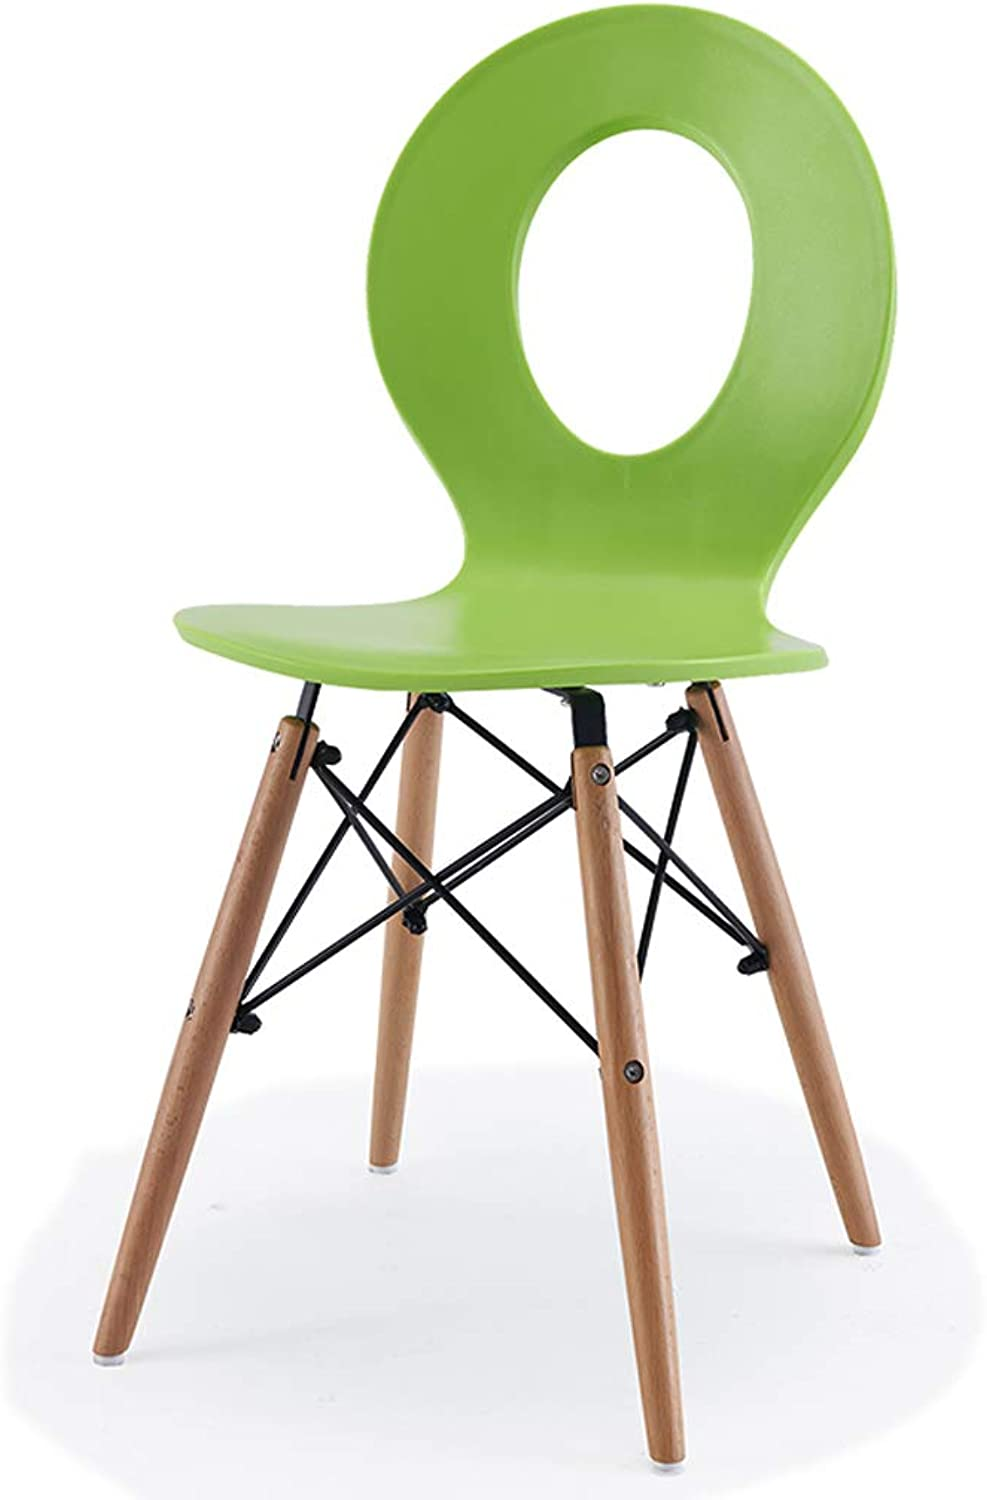 CXQ Creative Casual Fashion Solid Wood Dining Chair Modern Minimalist Plastic Chair to Discuss Household Stool (color   Green)